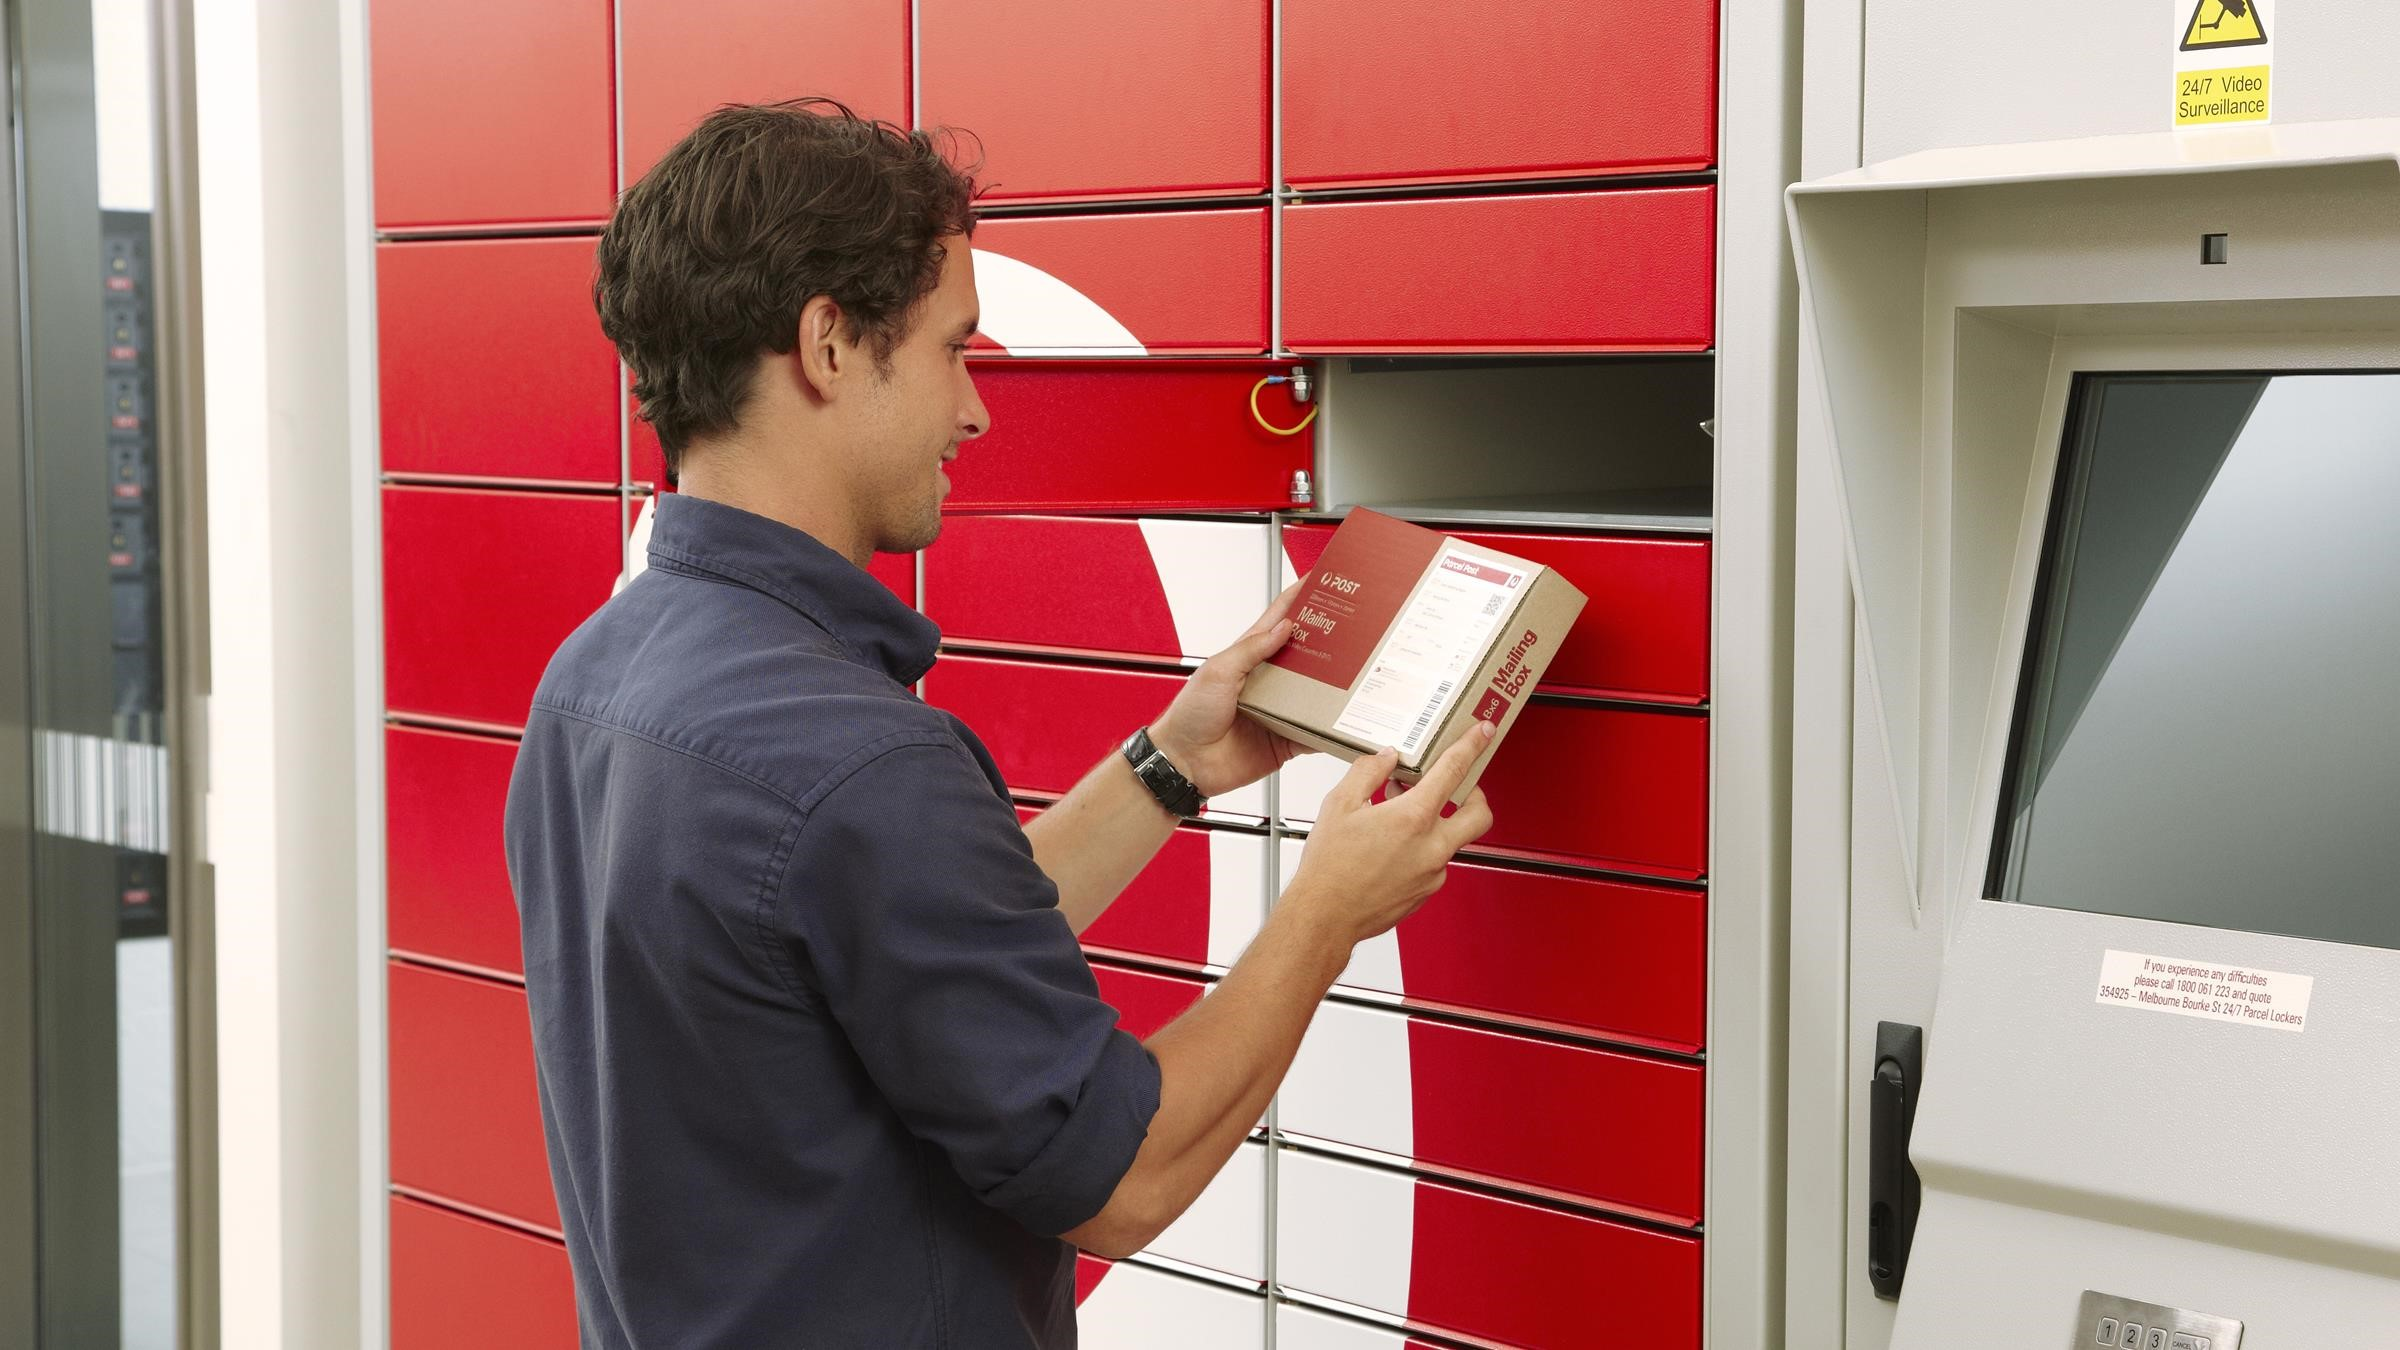 Send a parcel with a 24/7 Parcel Locker - Australia Post